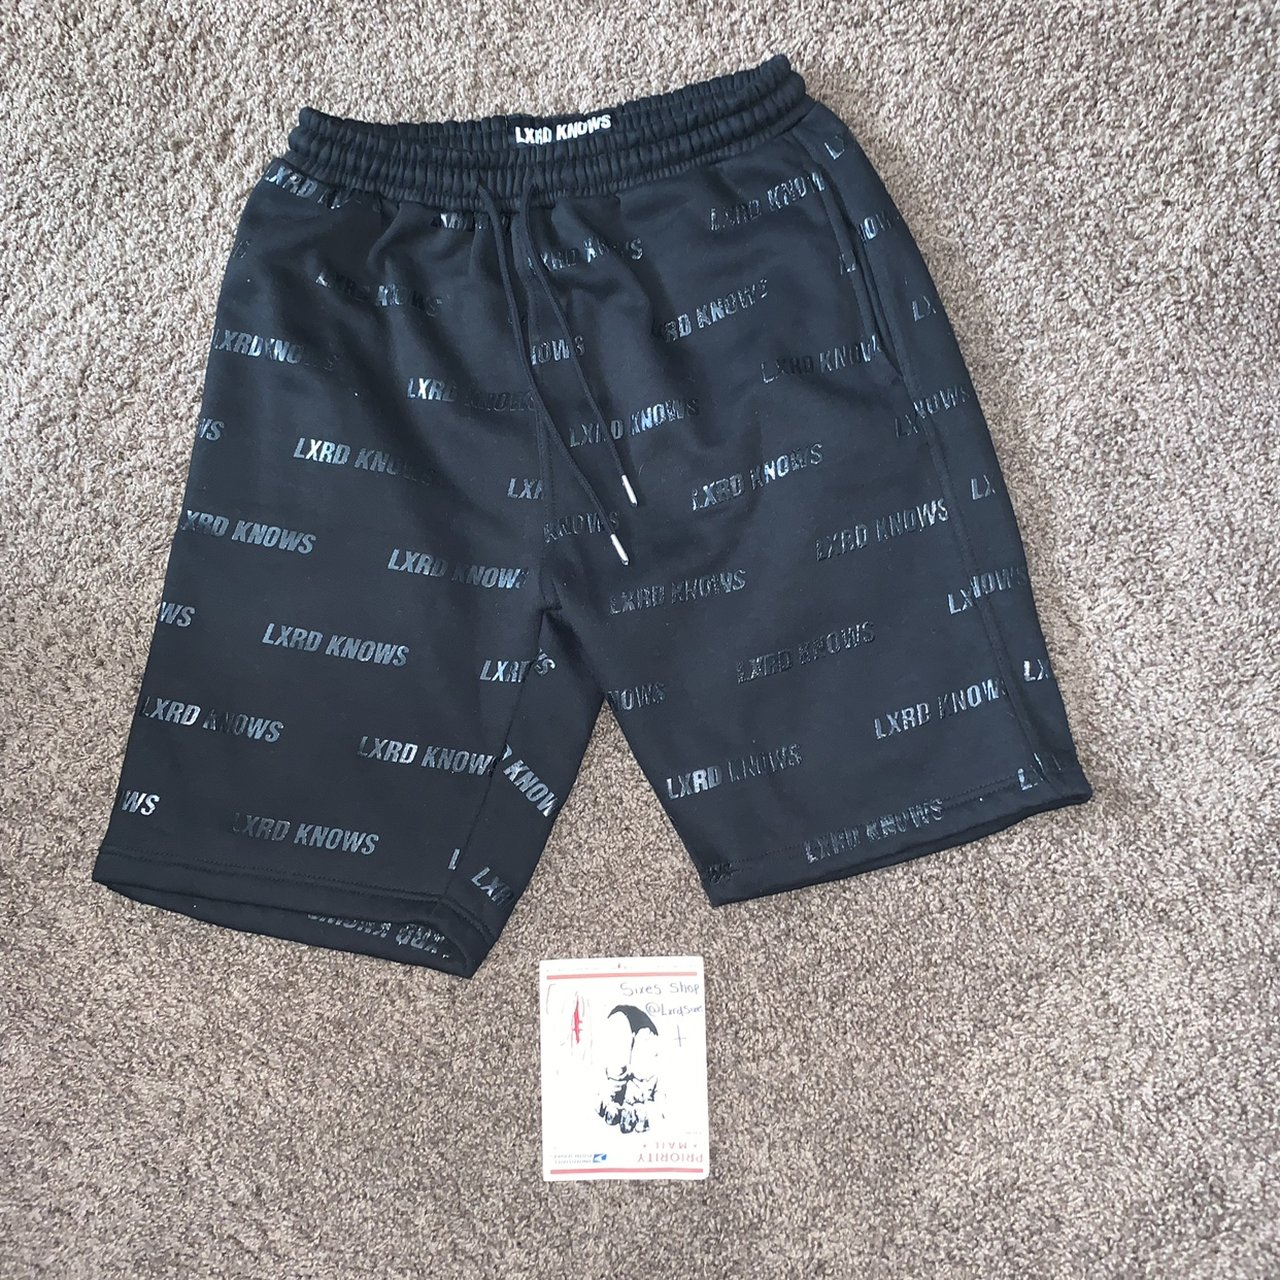 f0c7afa1757c Lxrd Knows All Over Shorts Color